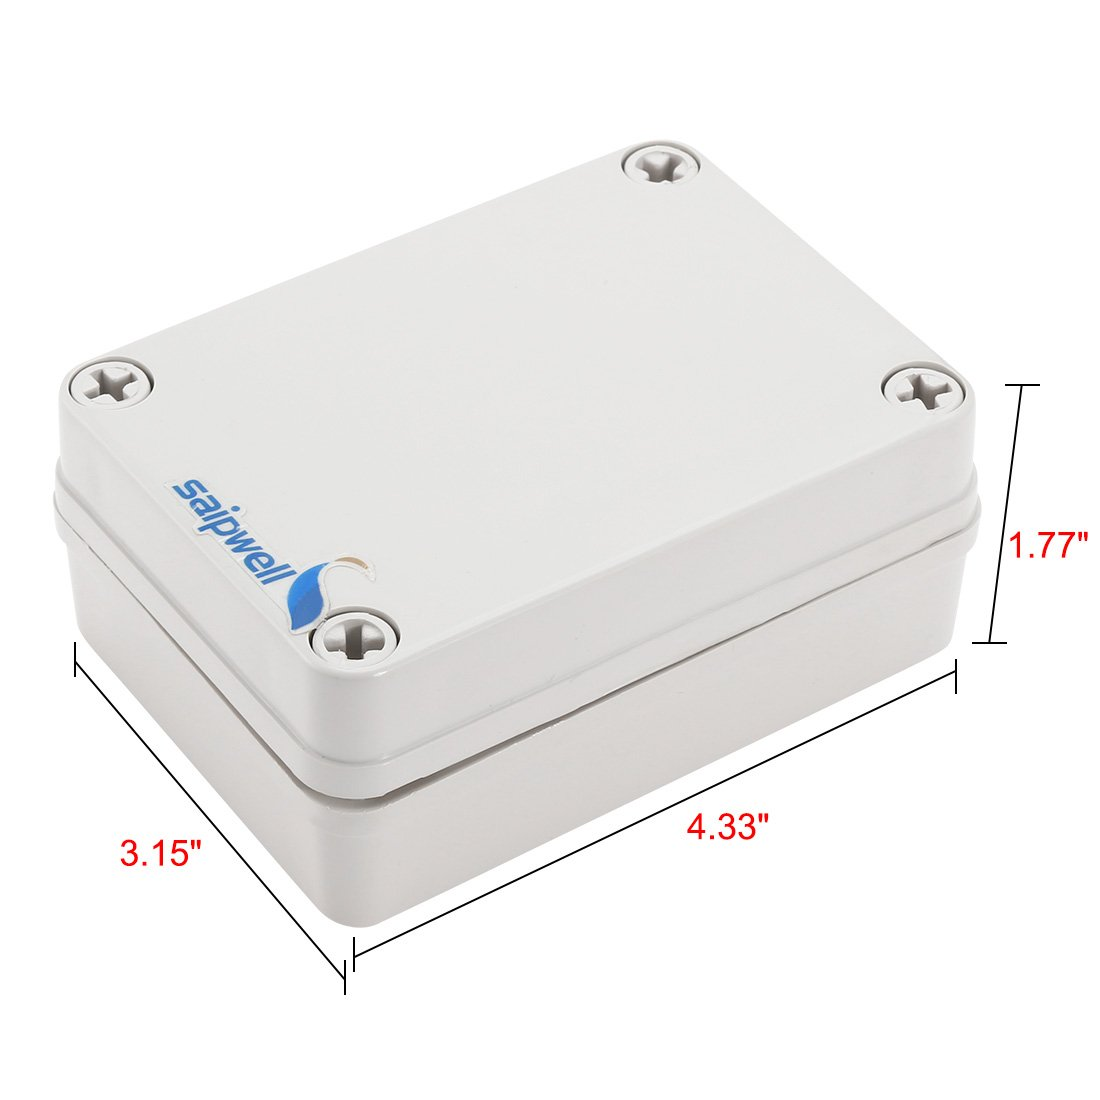 uxcell 4.92 x 6.89 x 3.94 Electronic ABS Plastic DIY Junction Box Enclosure Case Gray a17081400ux0531 125mm x 175mm x 100mm